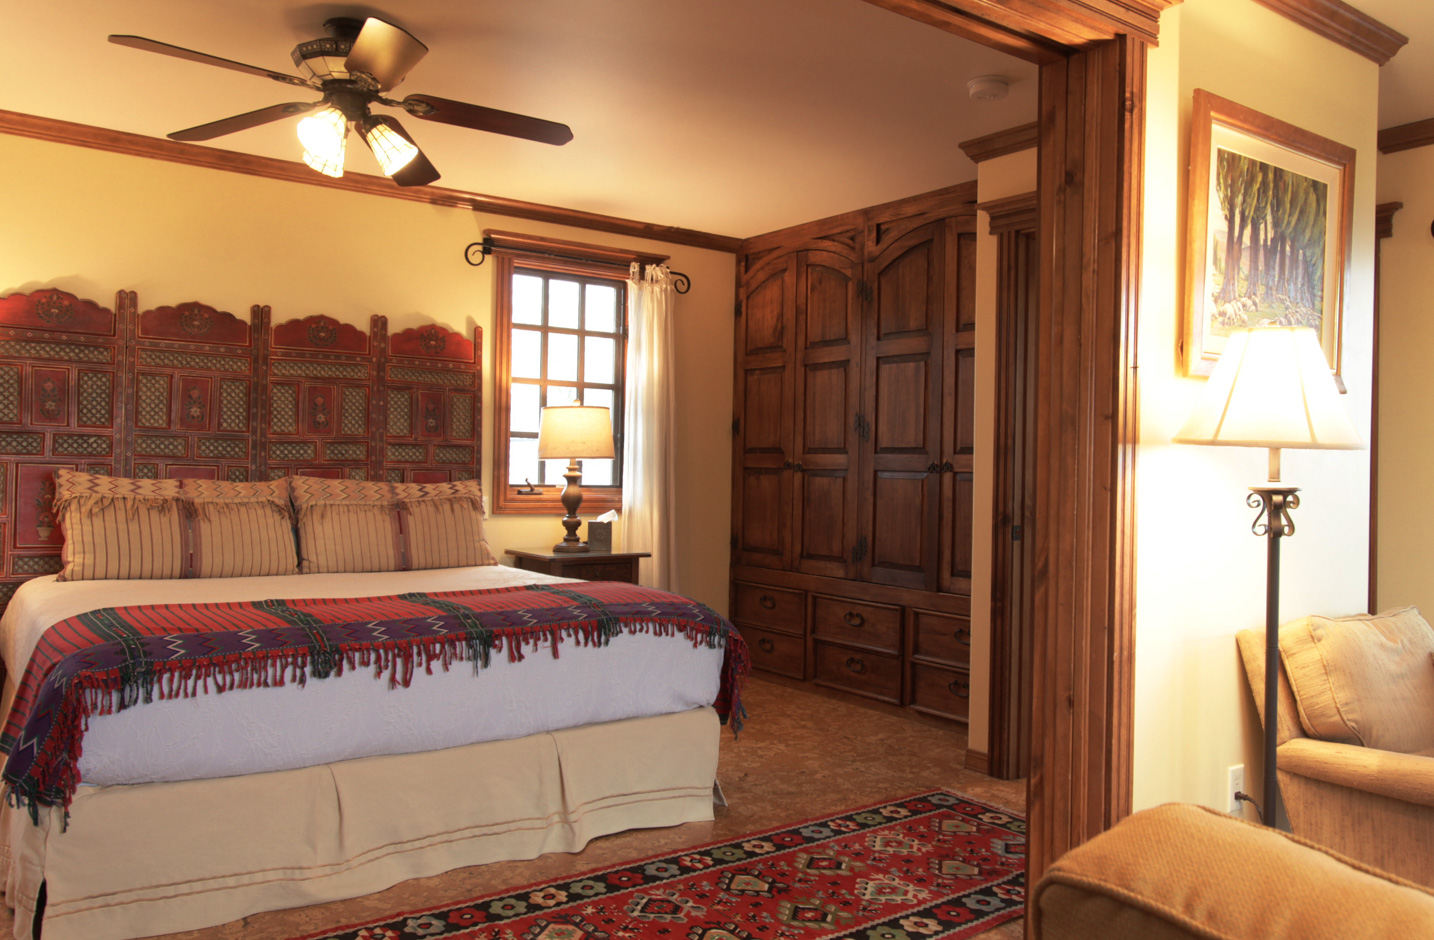 A large room with a king bed and ornate headboard